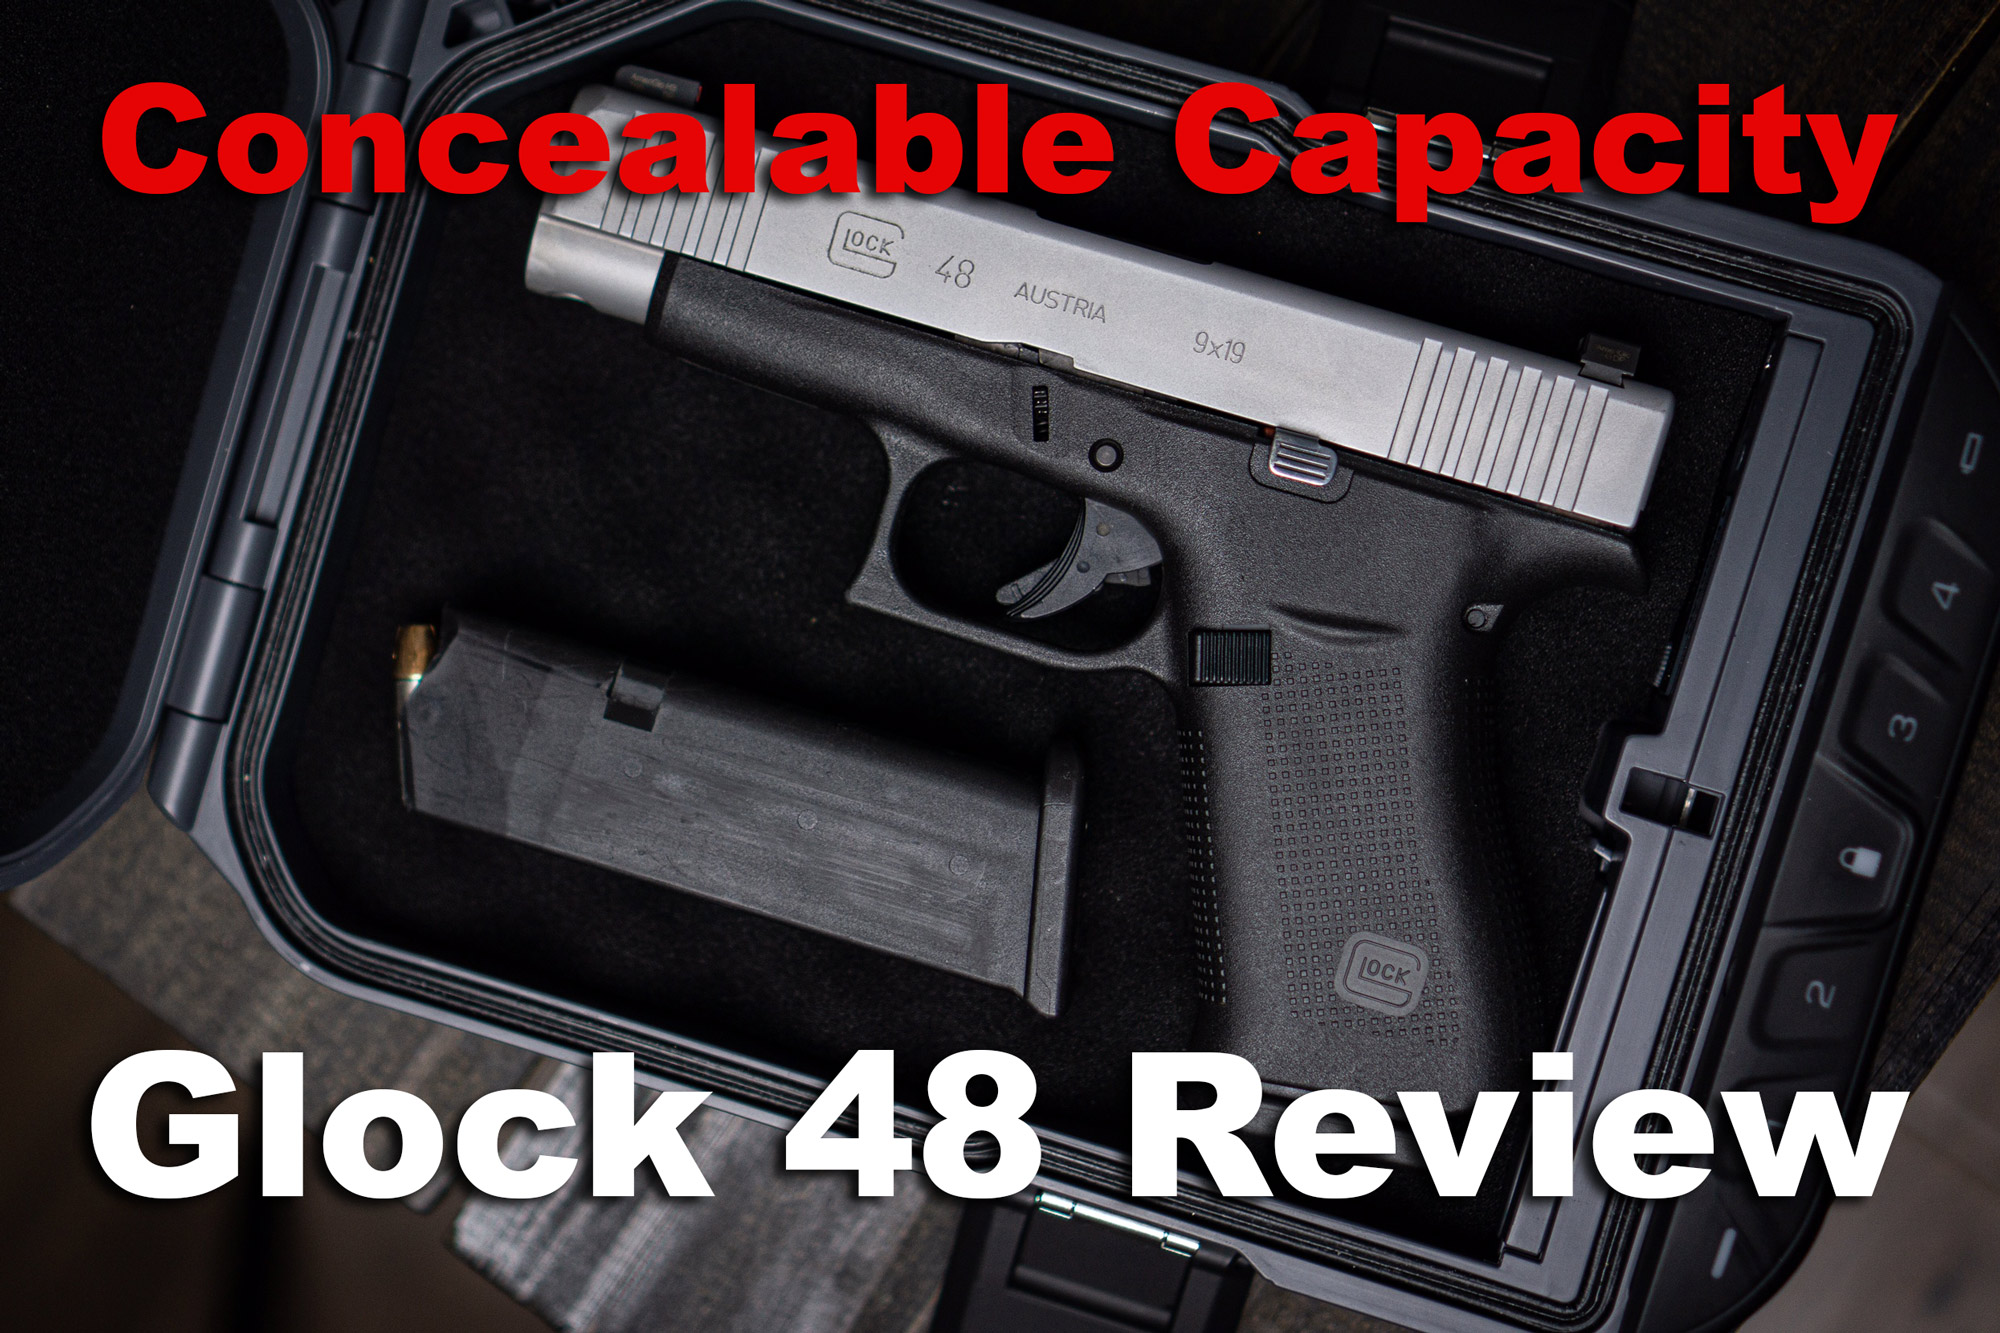 Glock 48 pistol with magazine in travel case used for a review